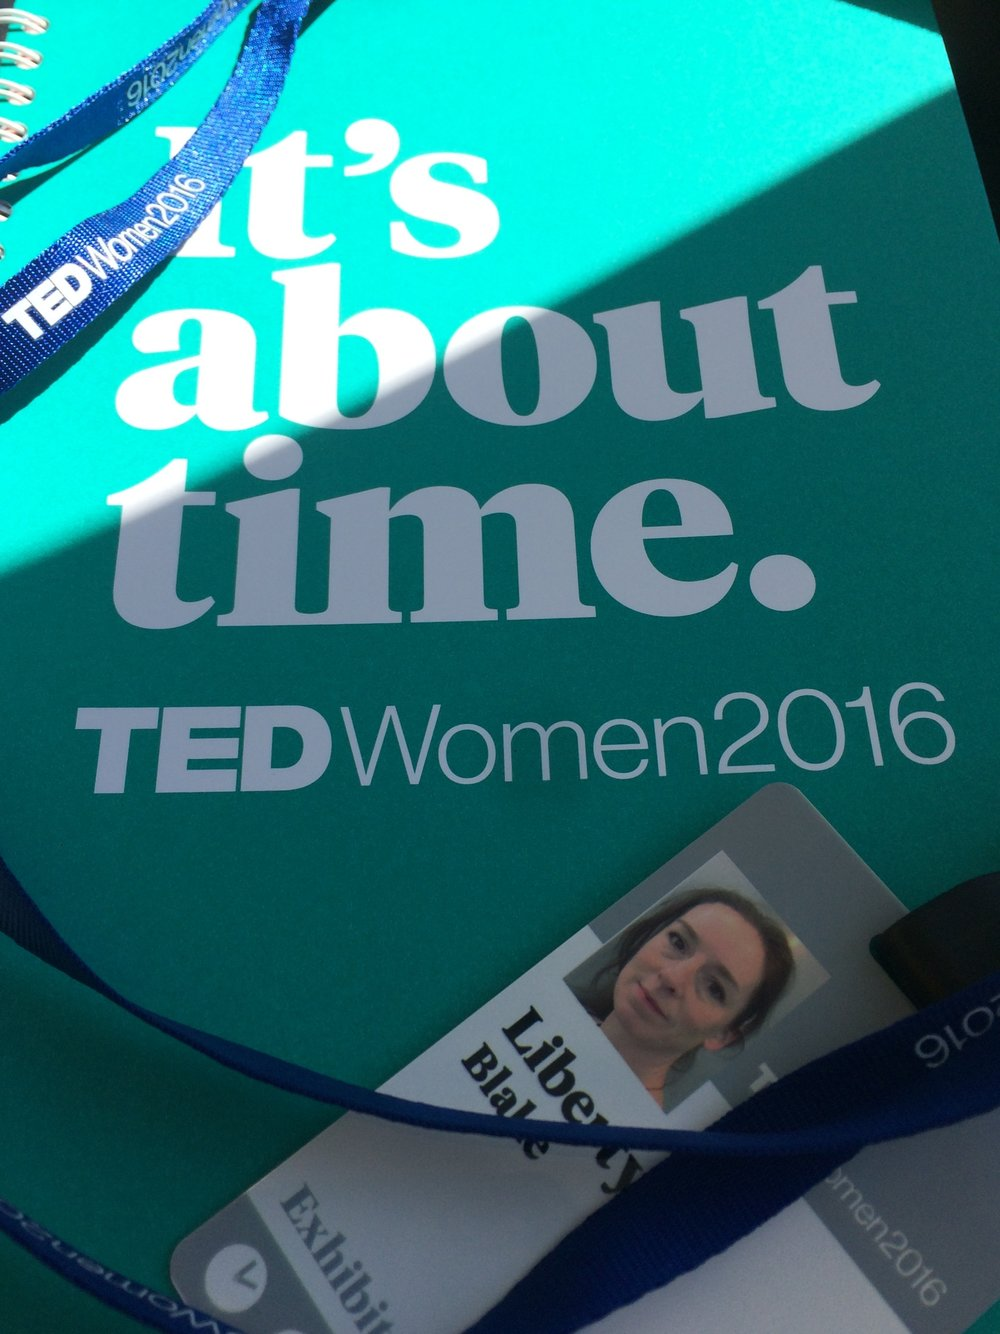 Tedwomen 2016 Jann Haworth Work in progress